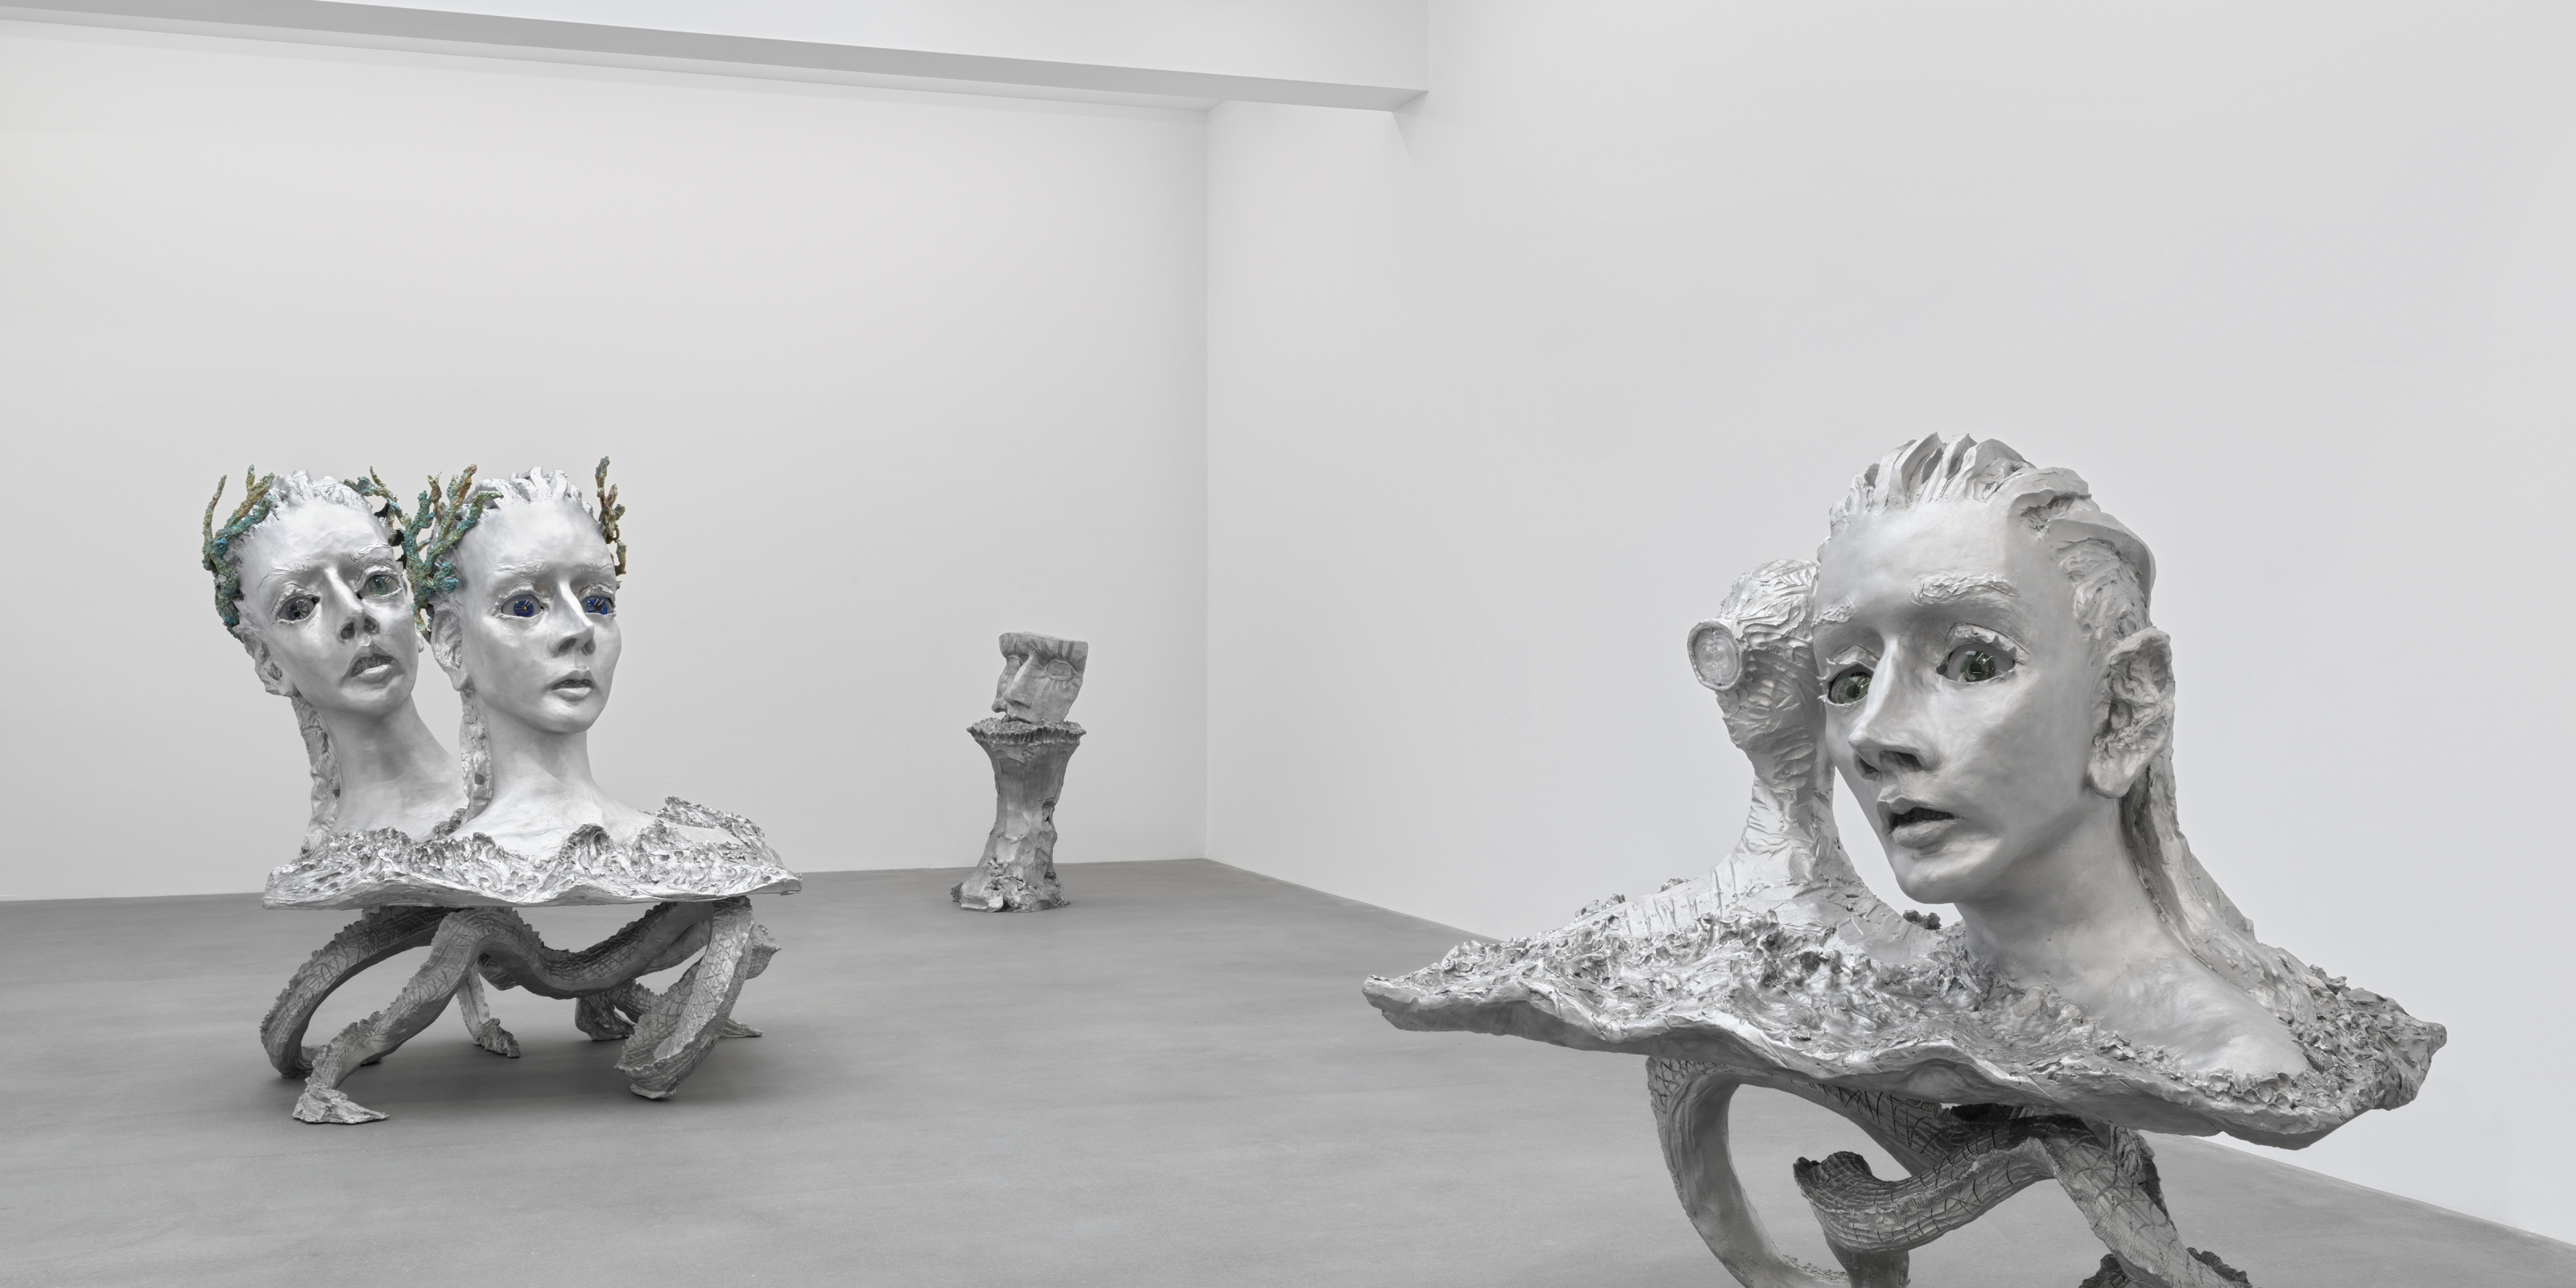 Installation view of sculptures by Jean-Marie Appriou